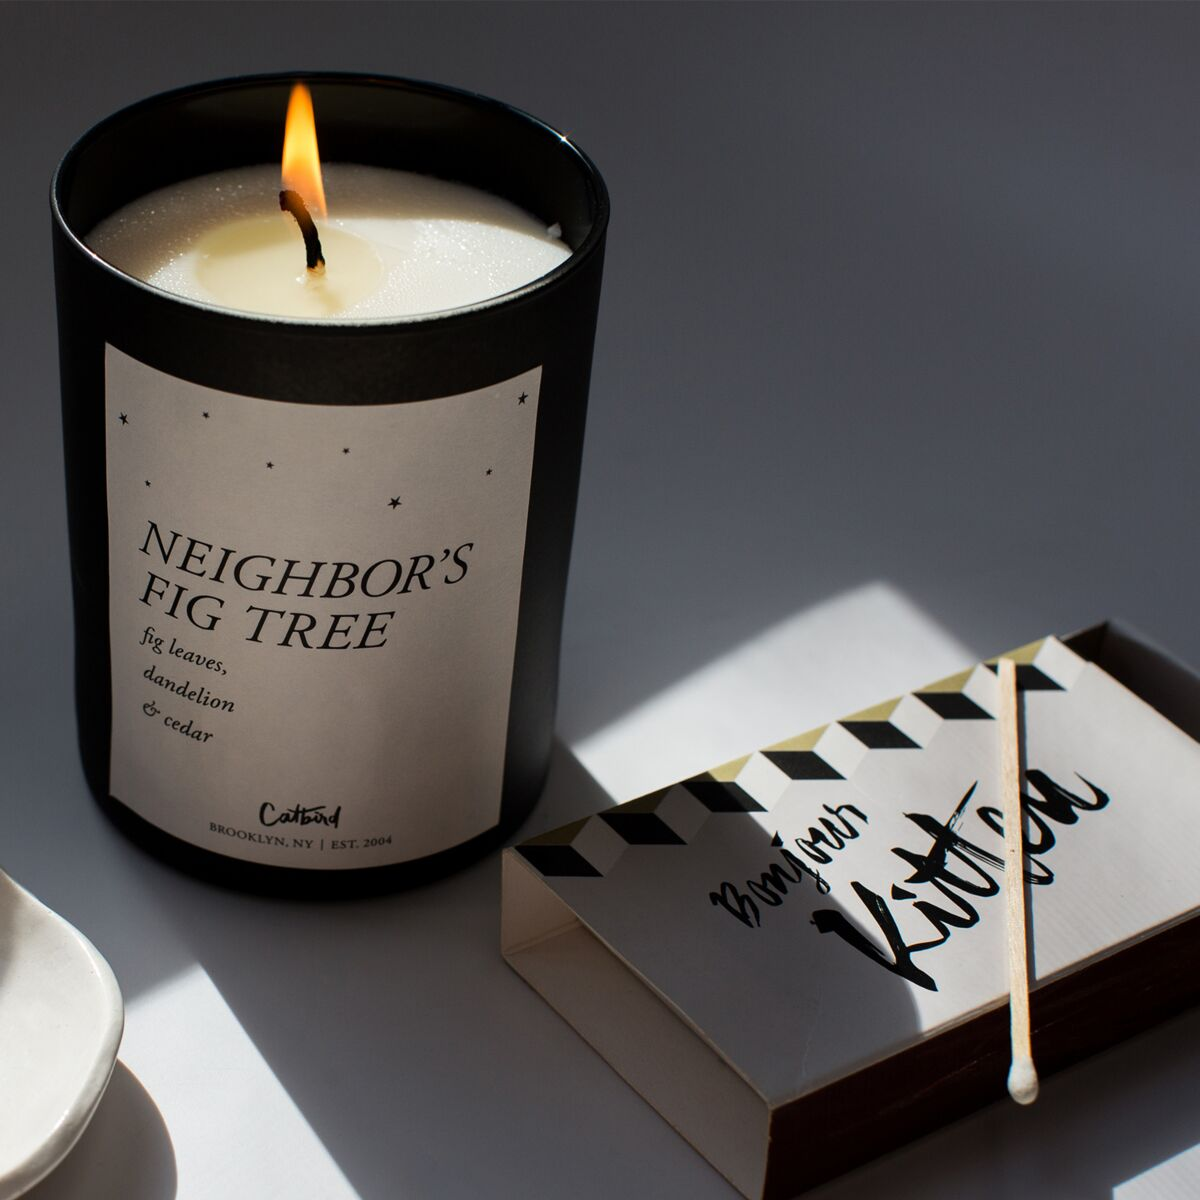 Neighbor's Fig Tree Candle image